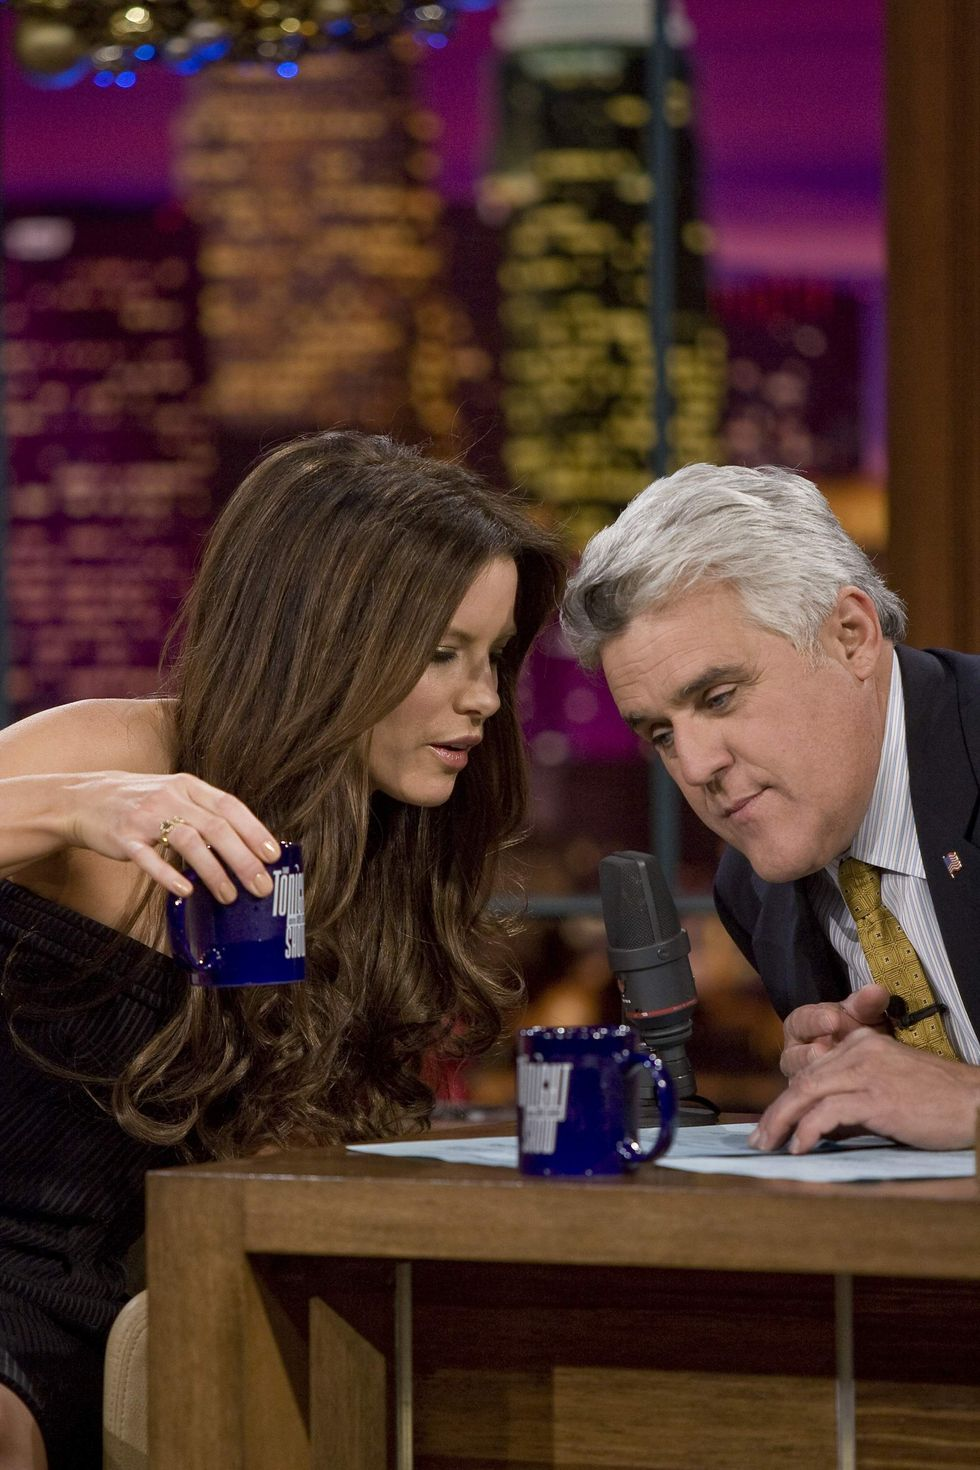 kate-beckinsale-at-the-the-tonight-show-with-jay-leno-in-los-angeles-01